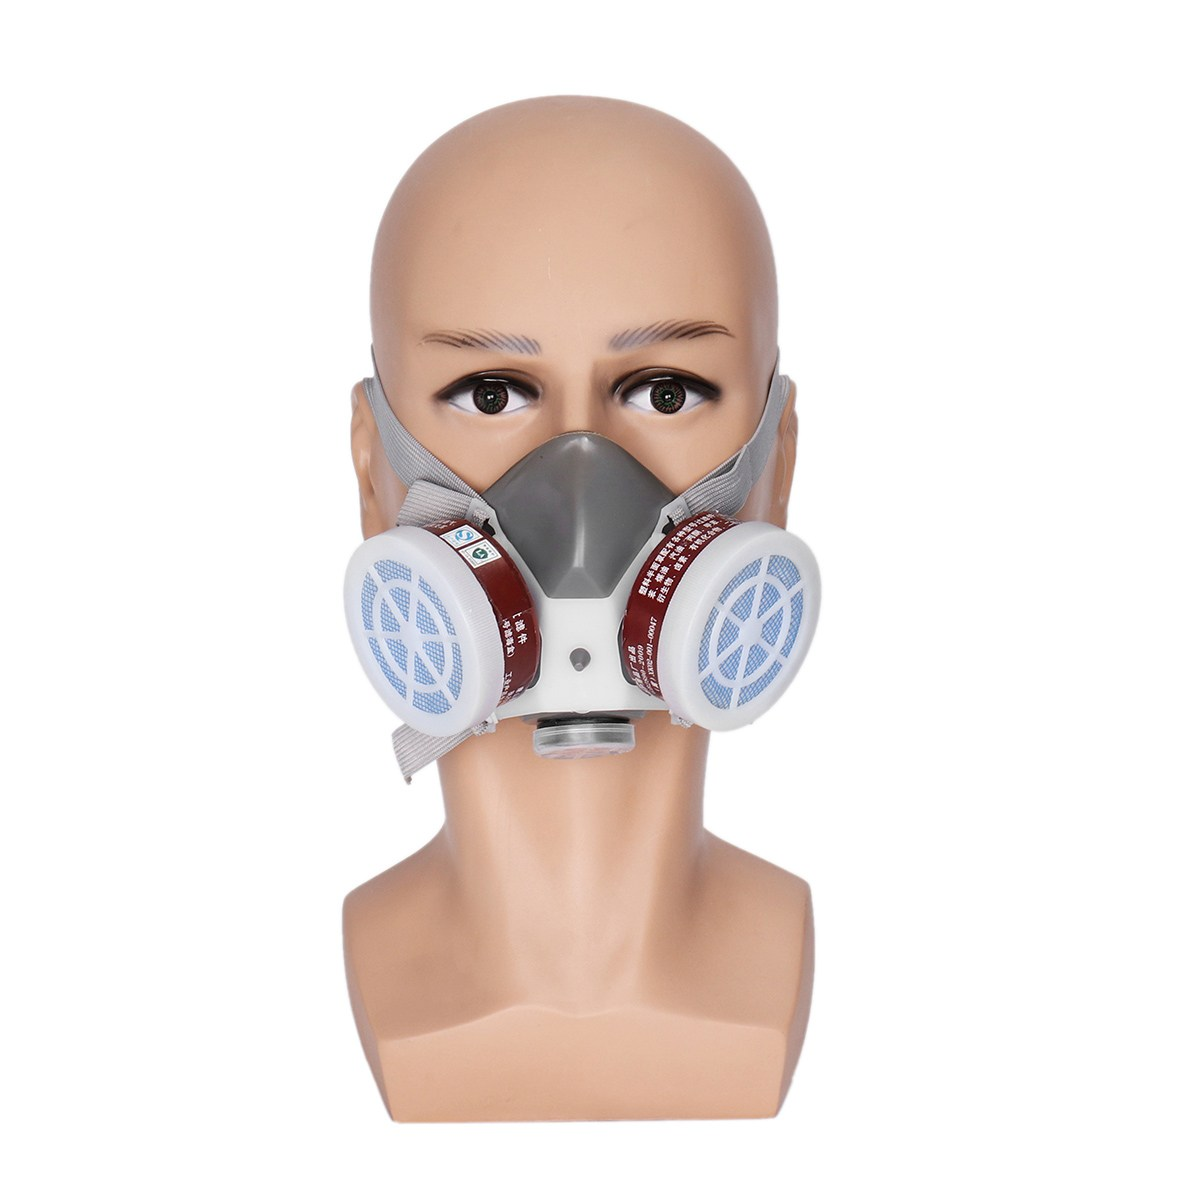 NEW Respirator Gas Mask Safety Chemical Anti-Dust Filter Military Workplace Safety Protection Anti Dust anti splash resistant high temperature aluminum alloy bracket mask safety protection mask